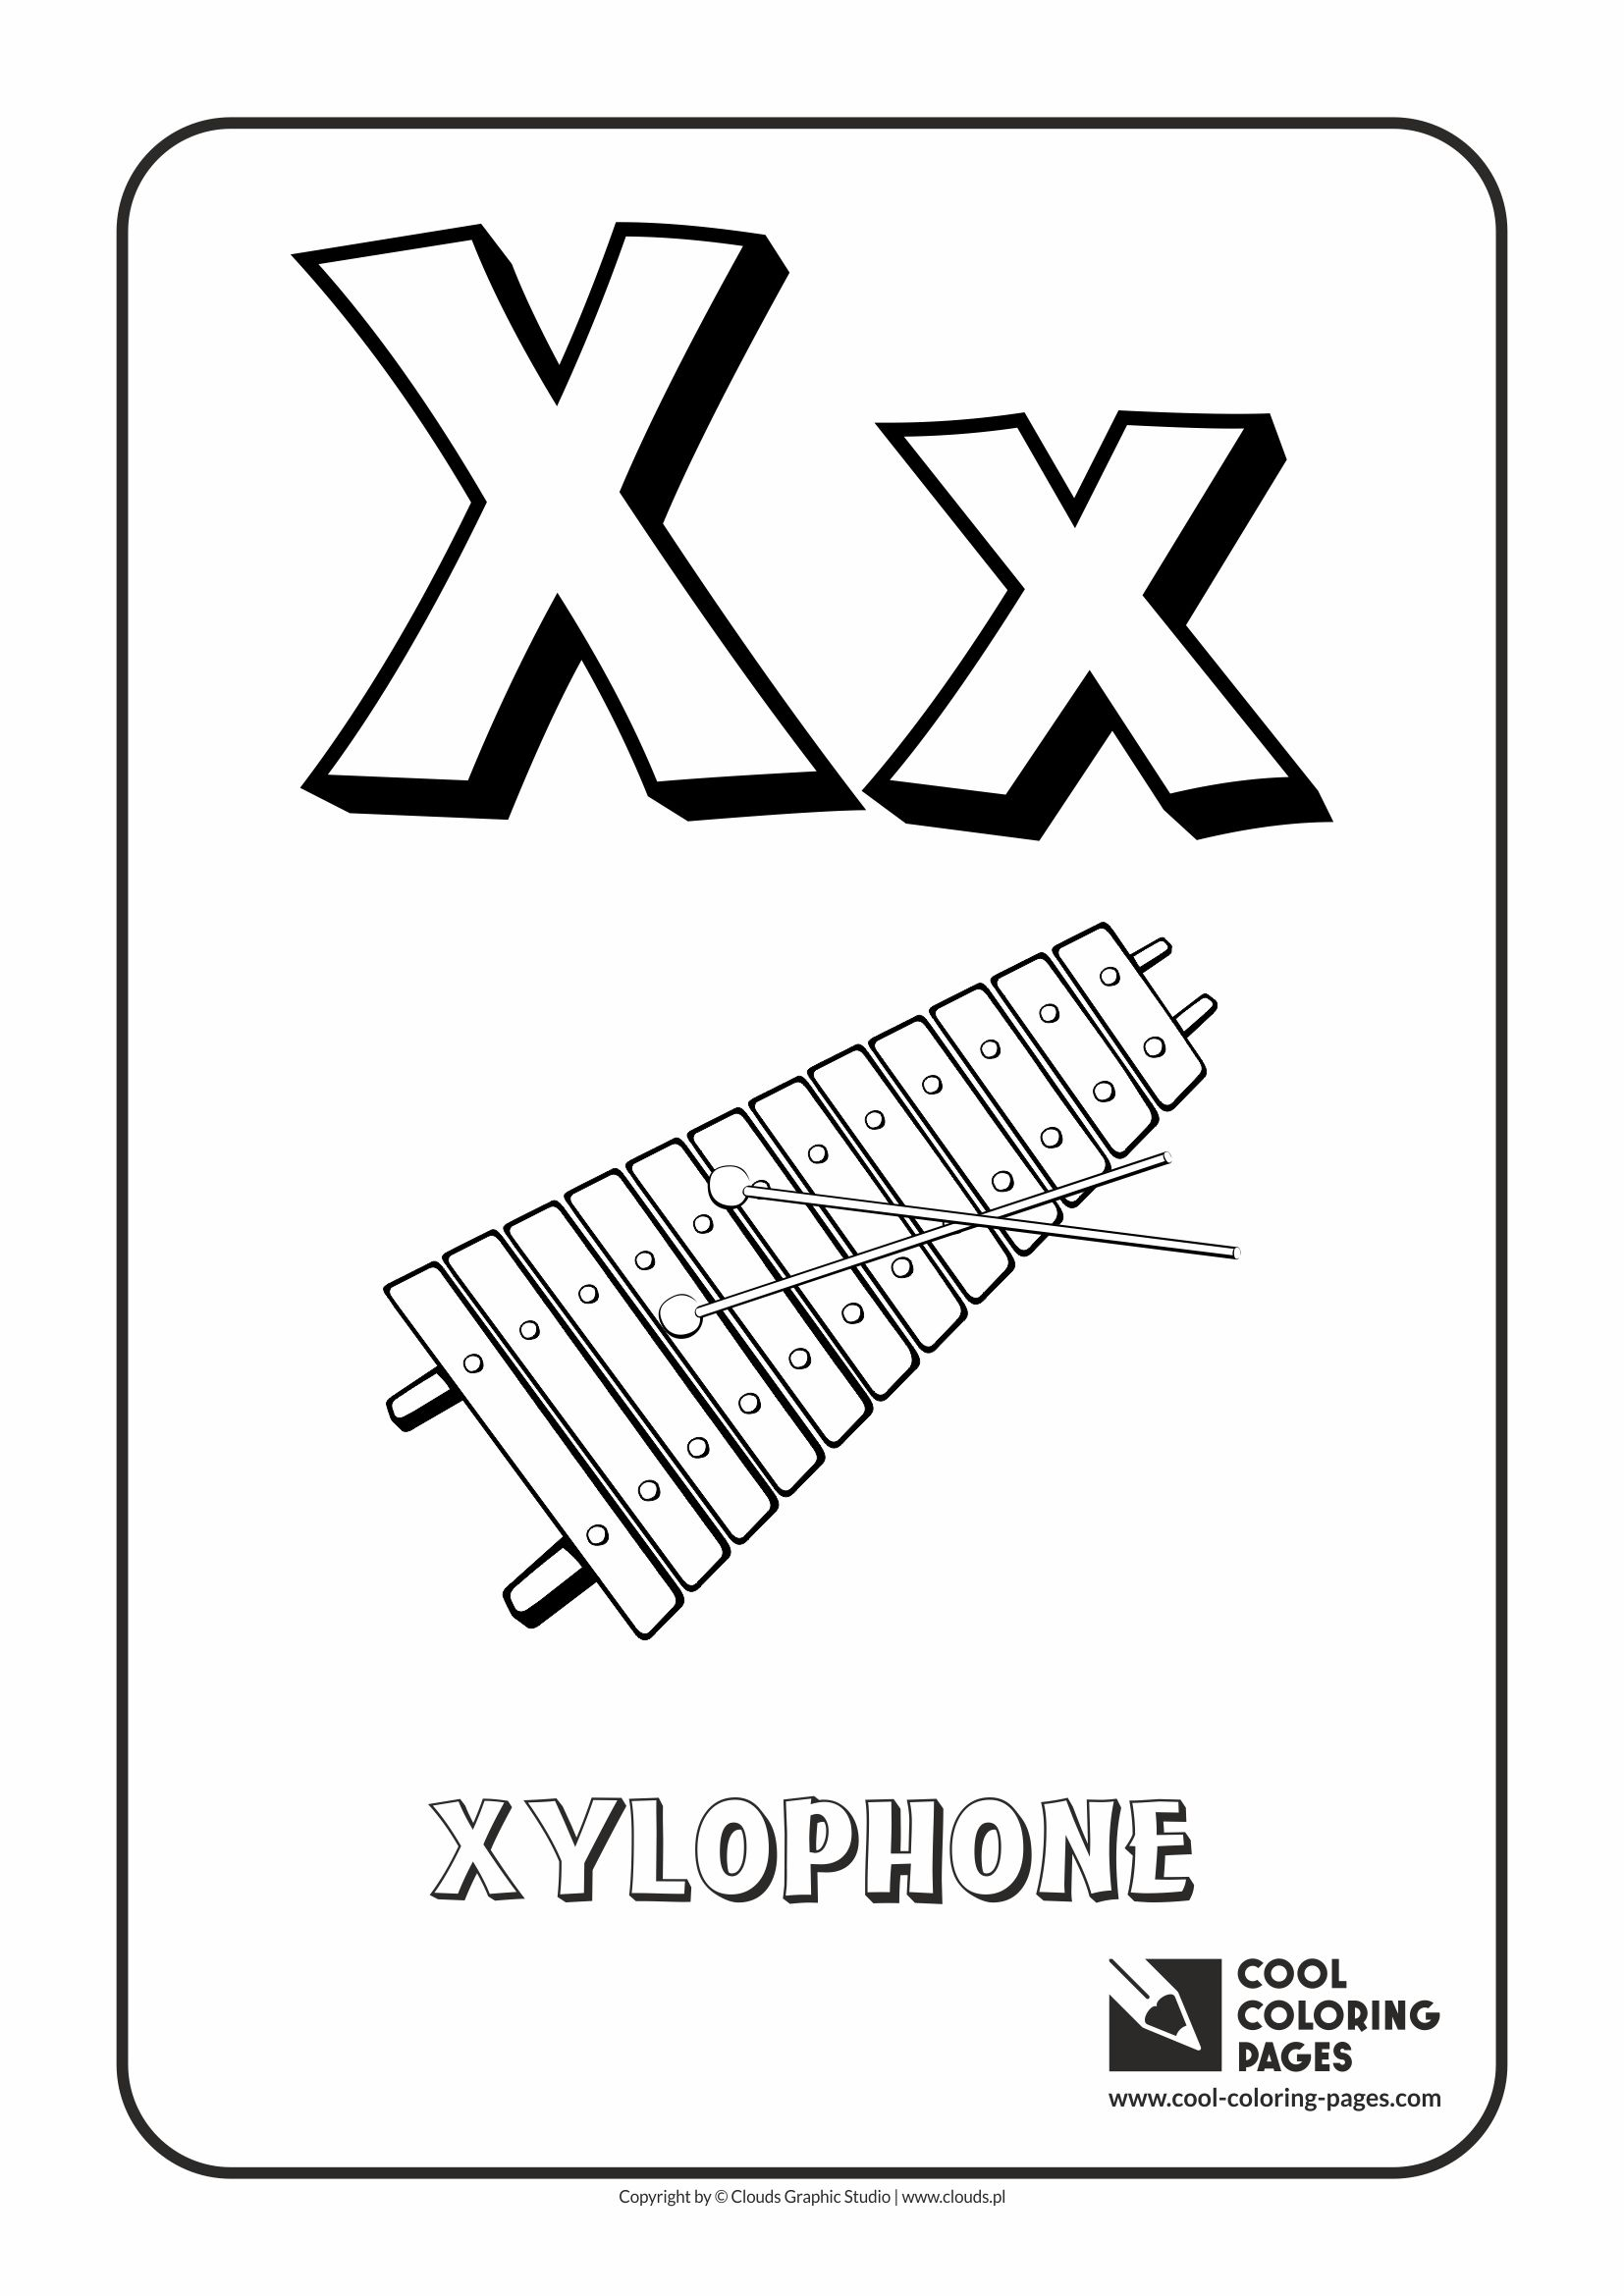 X ray coloring page - Cool Coloring Pages Alphabet Letter X Coloring Page With Letter X